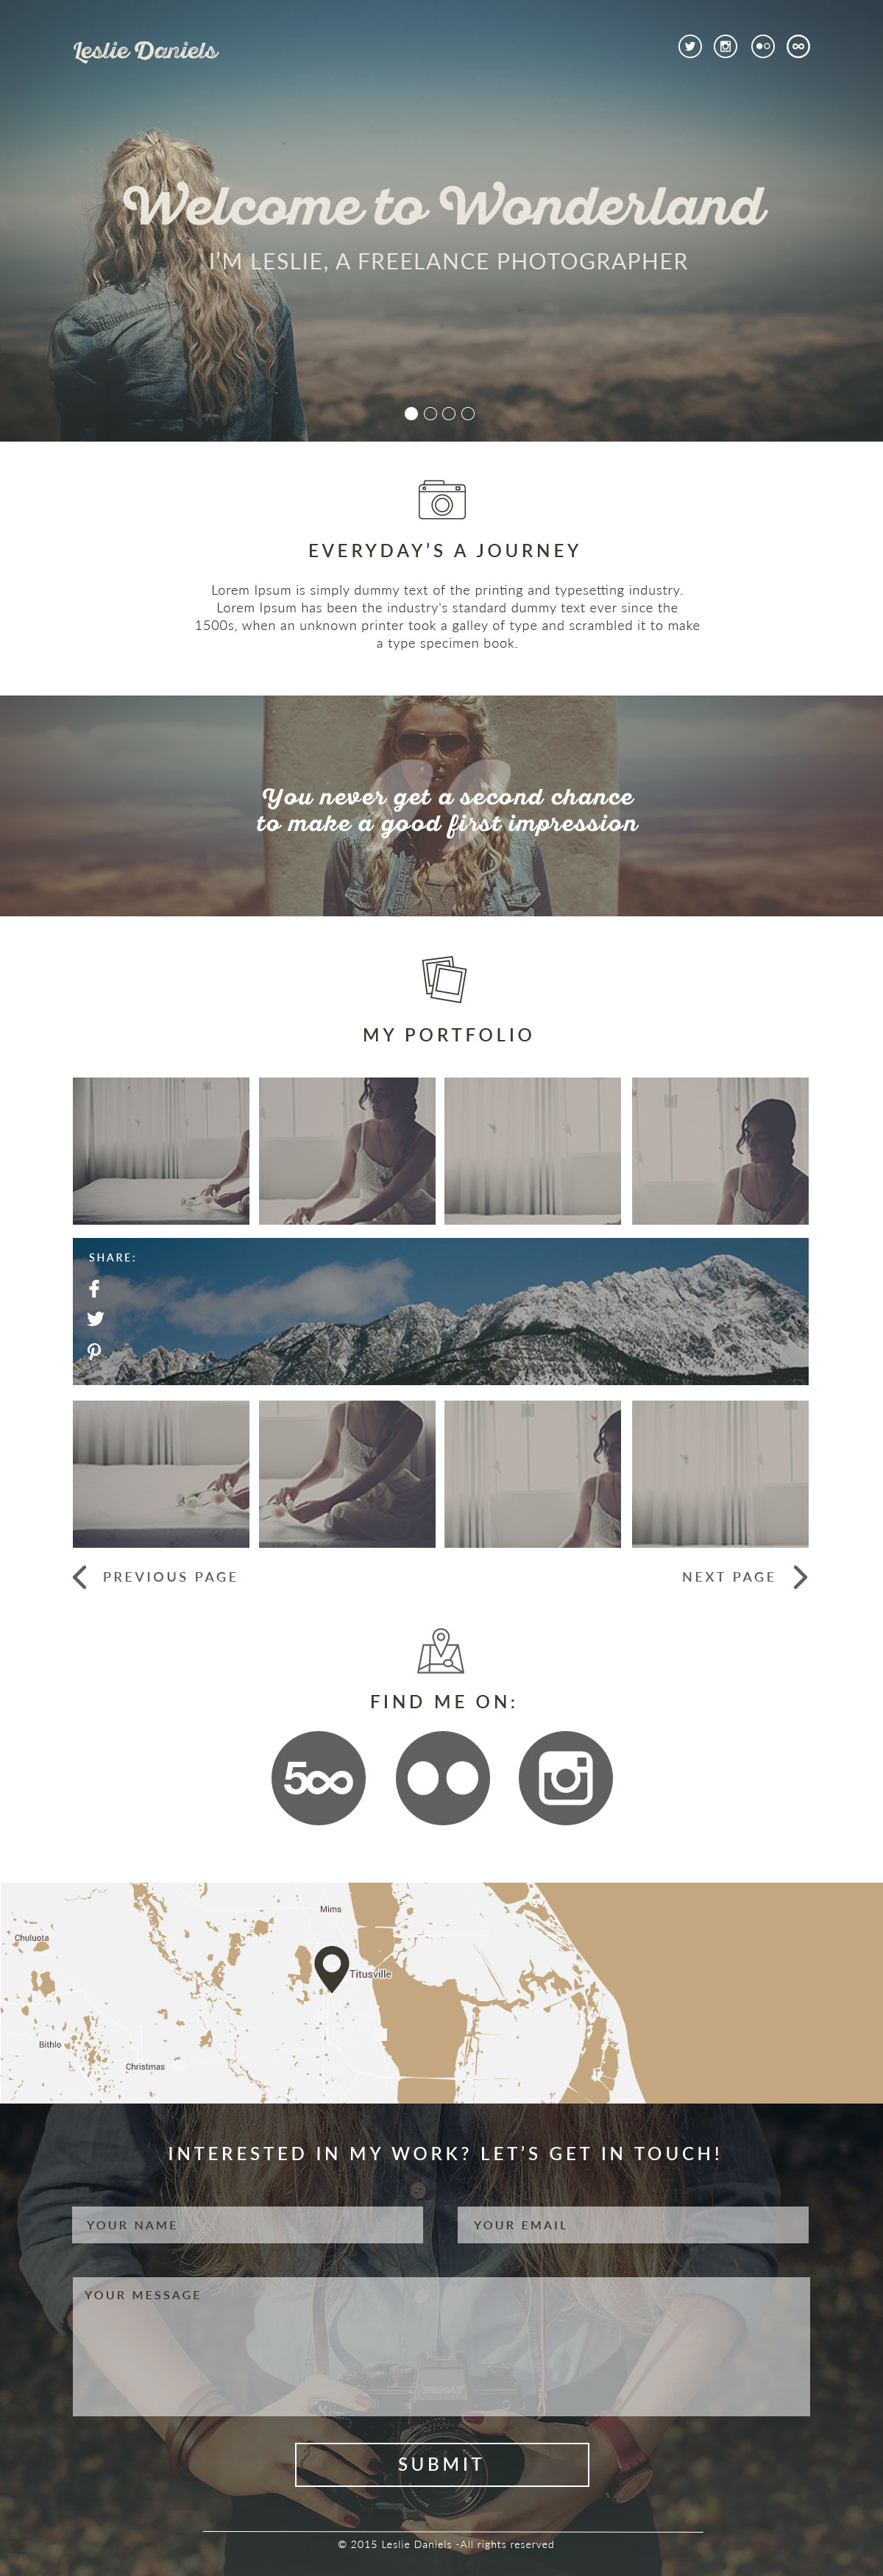 Leslie - PSD portfolio page for photographers